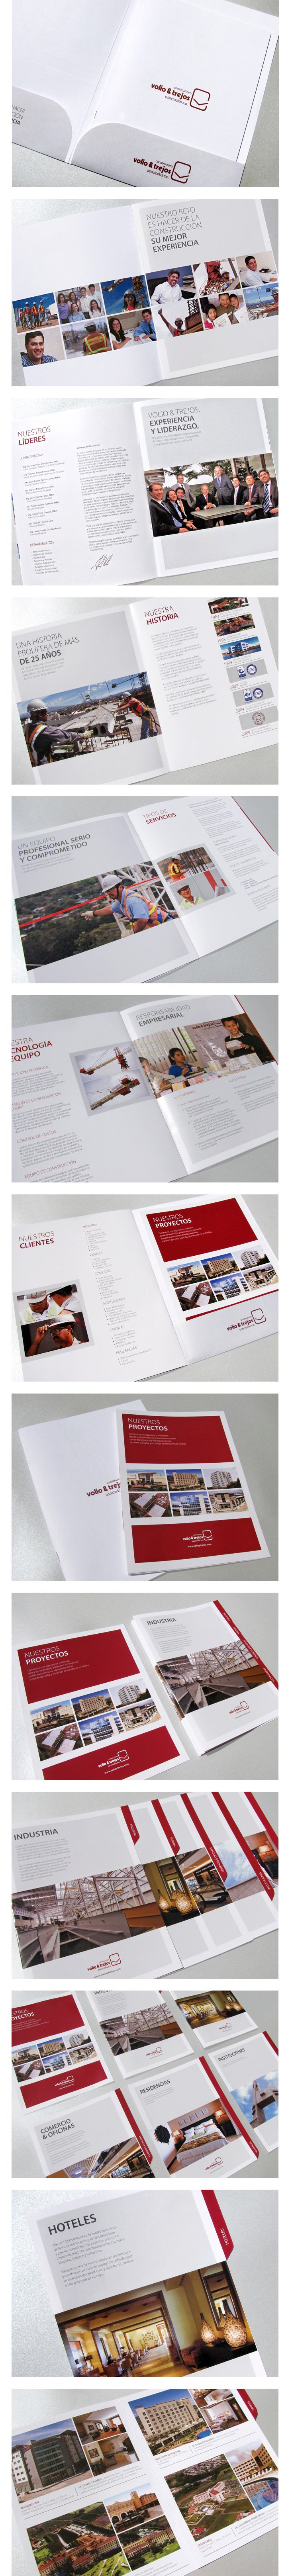 voliobig1 25 Incredible Examples of Brochure and Catalog Design